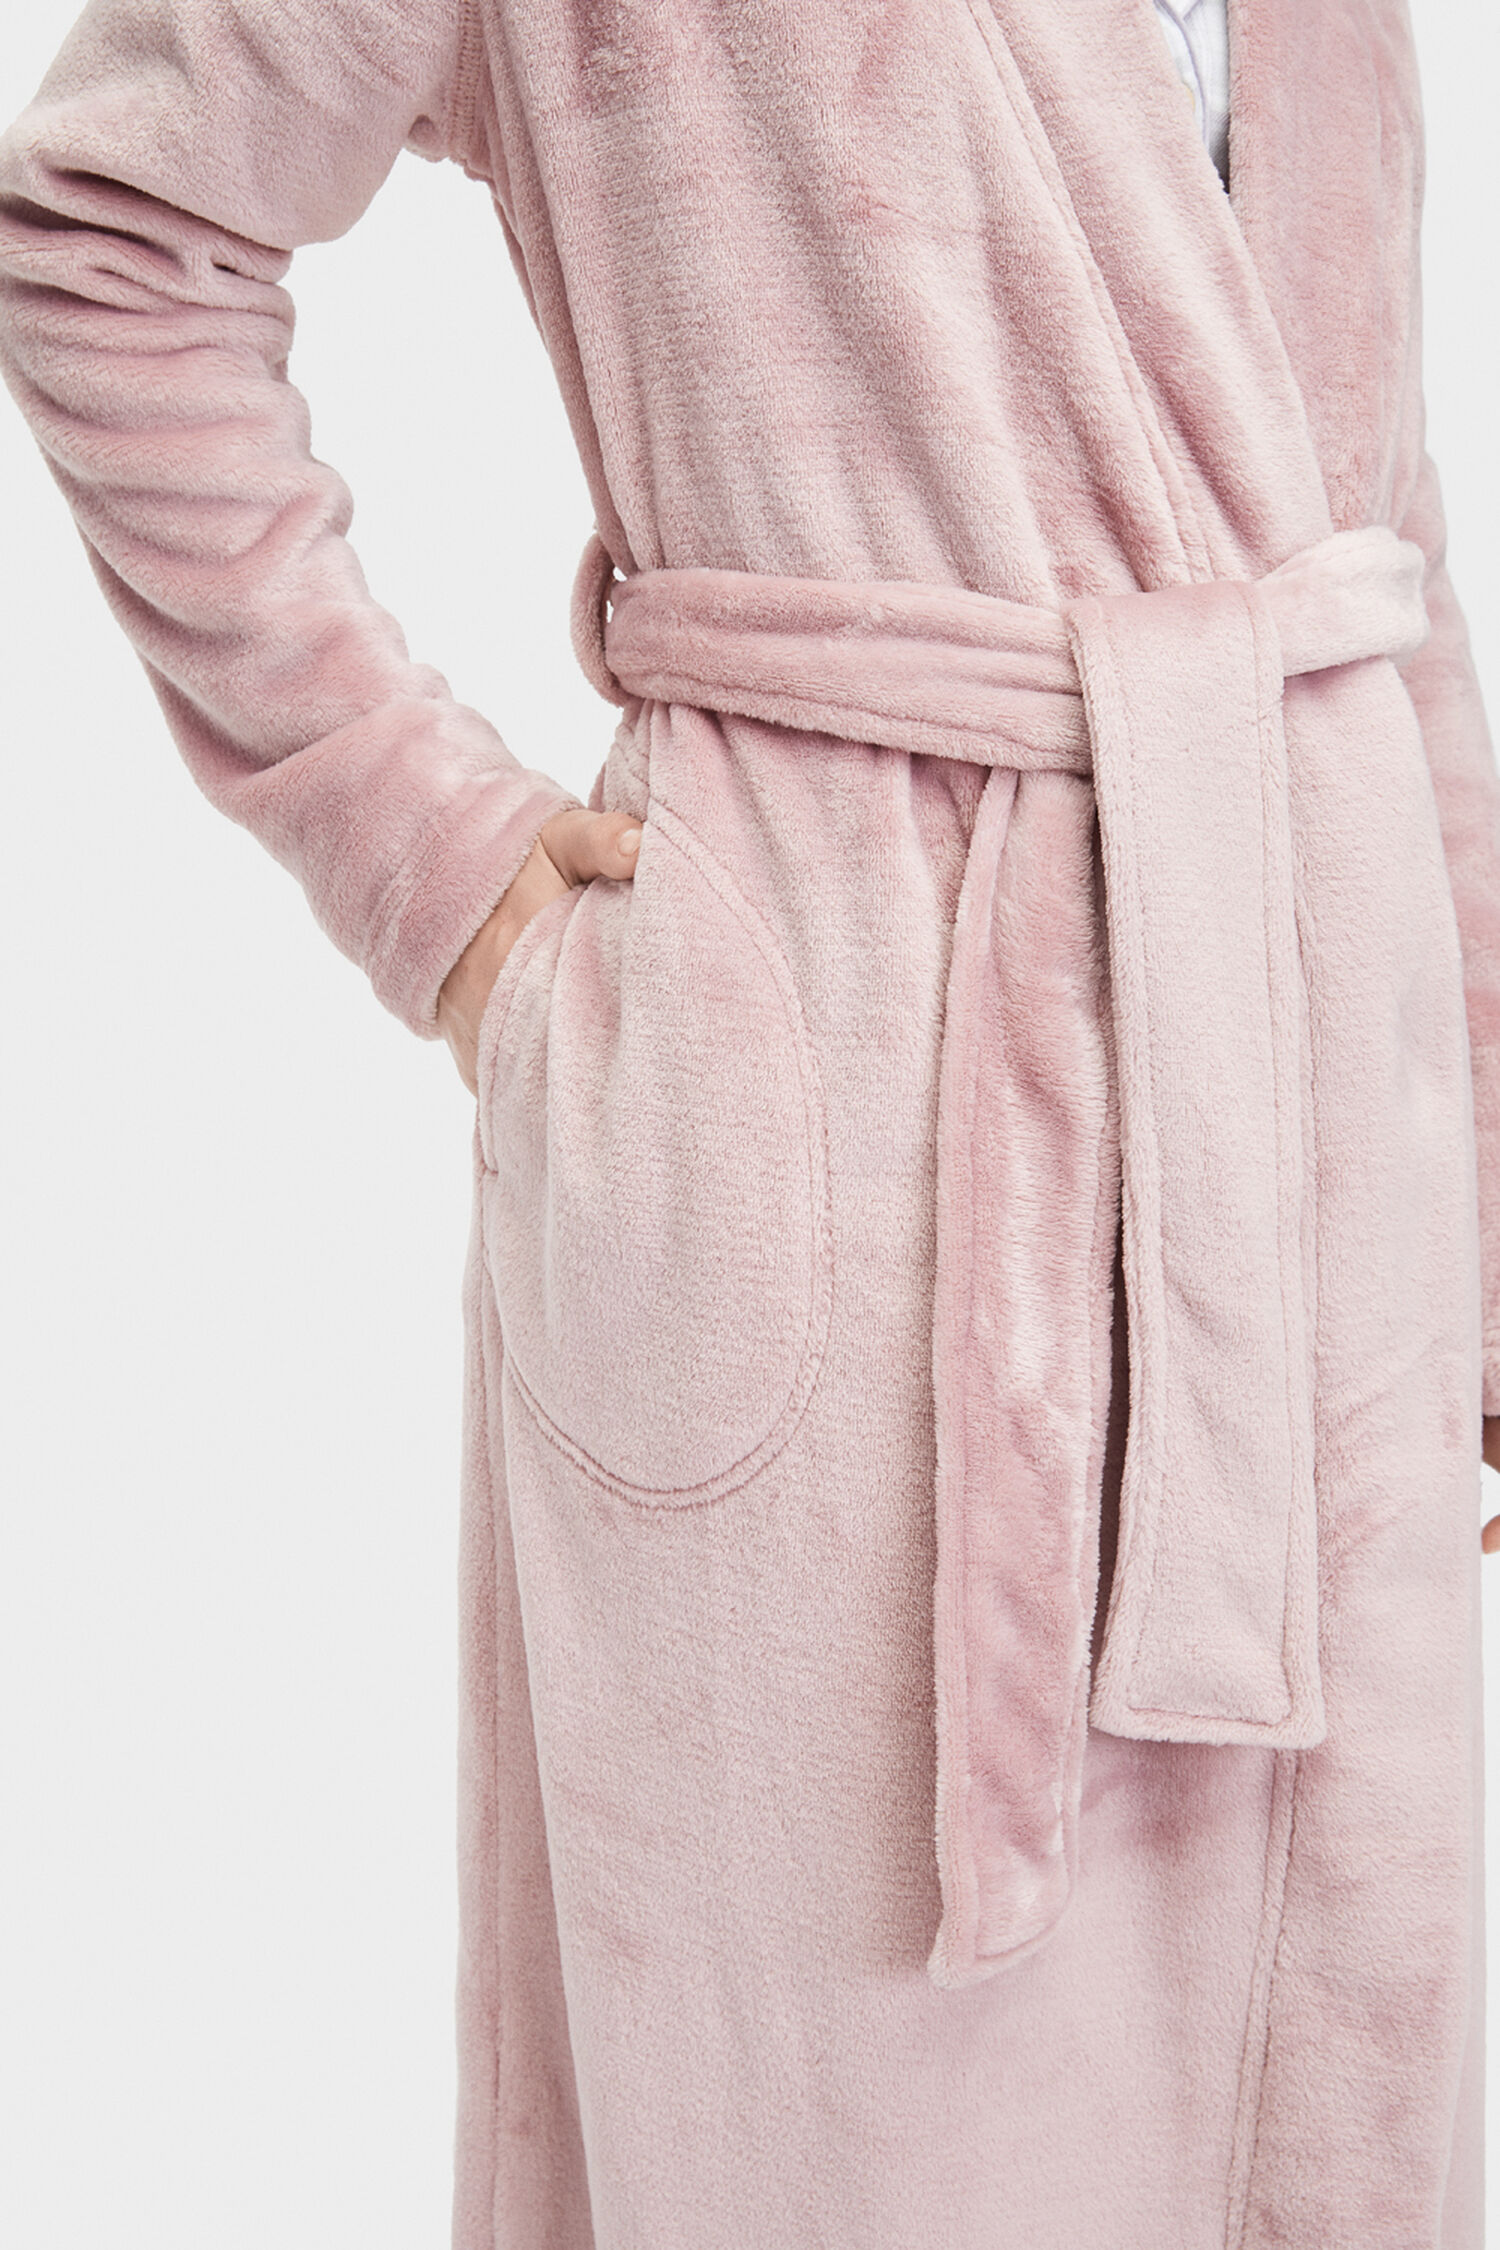 Zoom Marlow Robe - Image 4 of 5 2a851a241